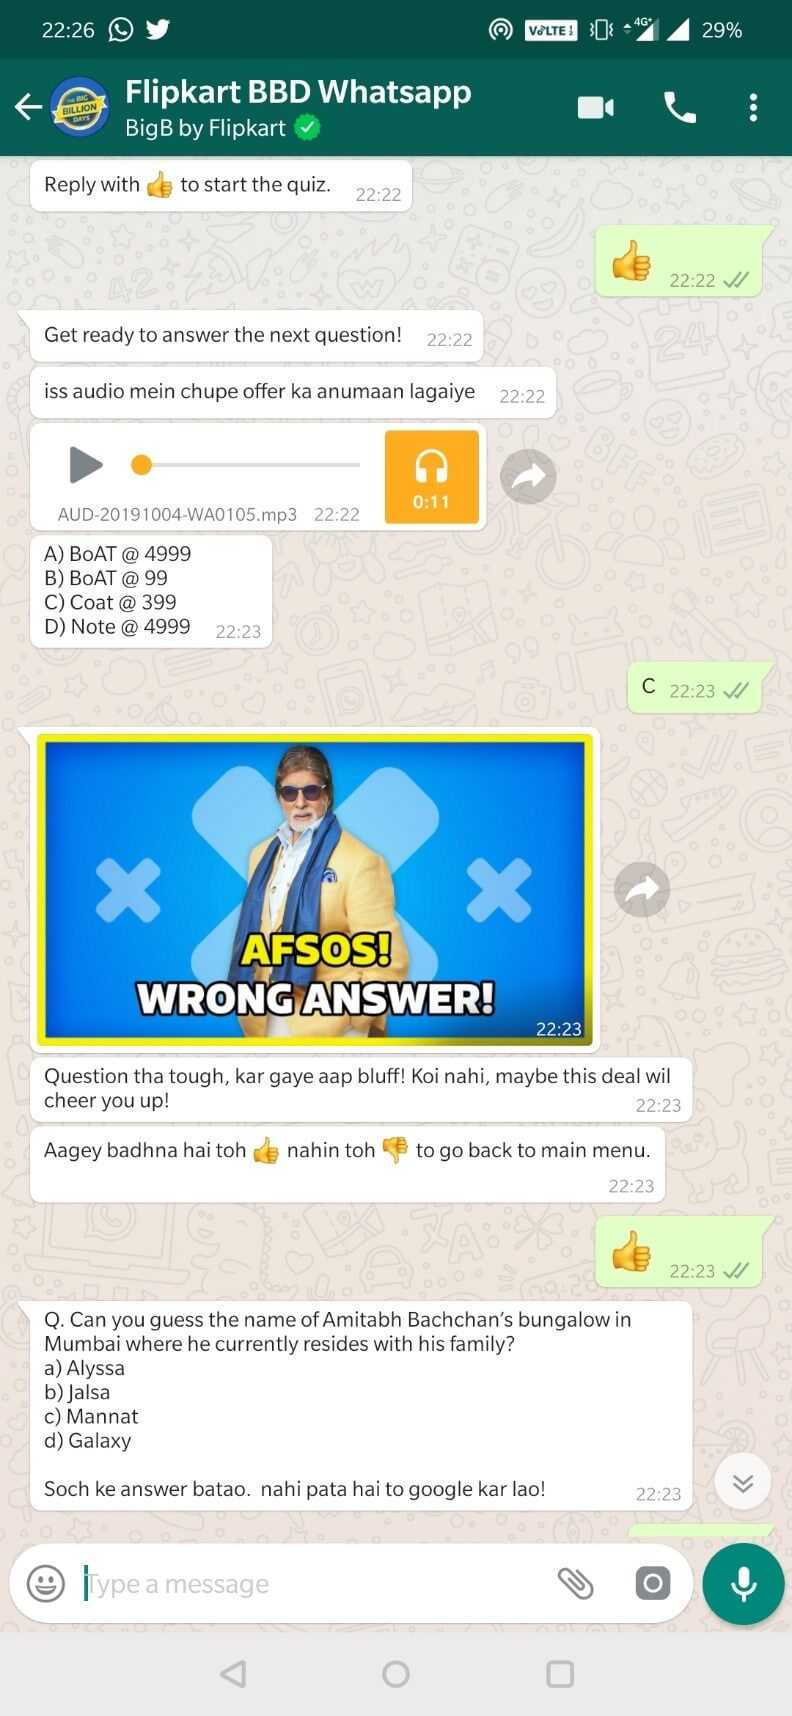 Play Quiz on Flipkart's Big Billion Big B WhatsApp Chatbot